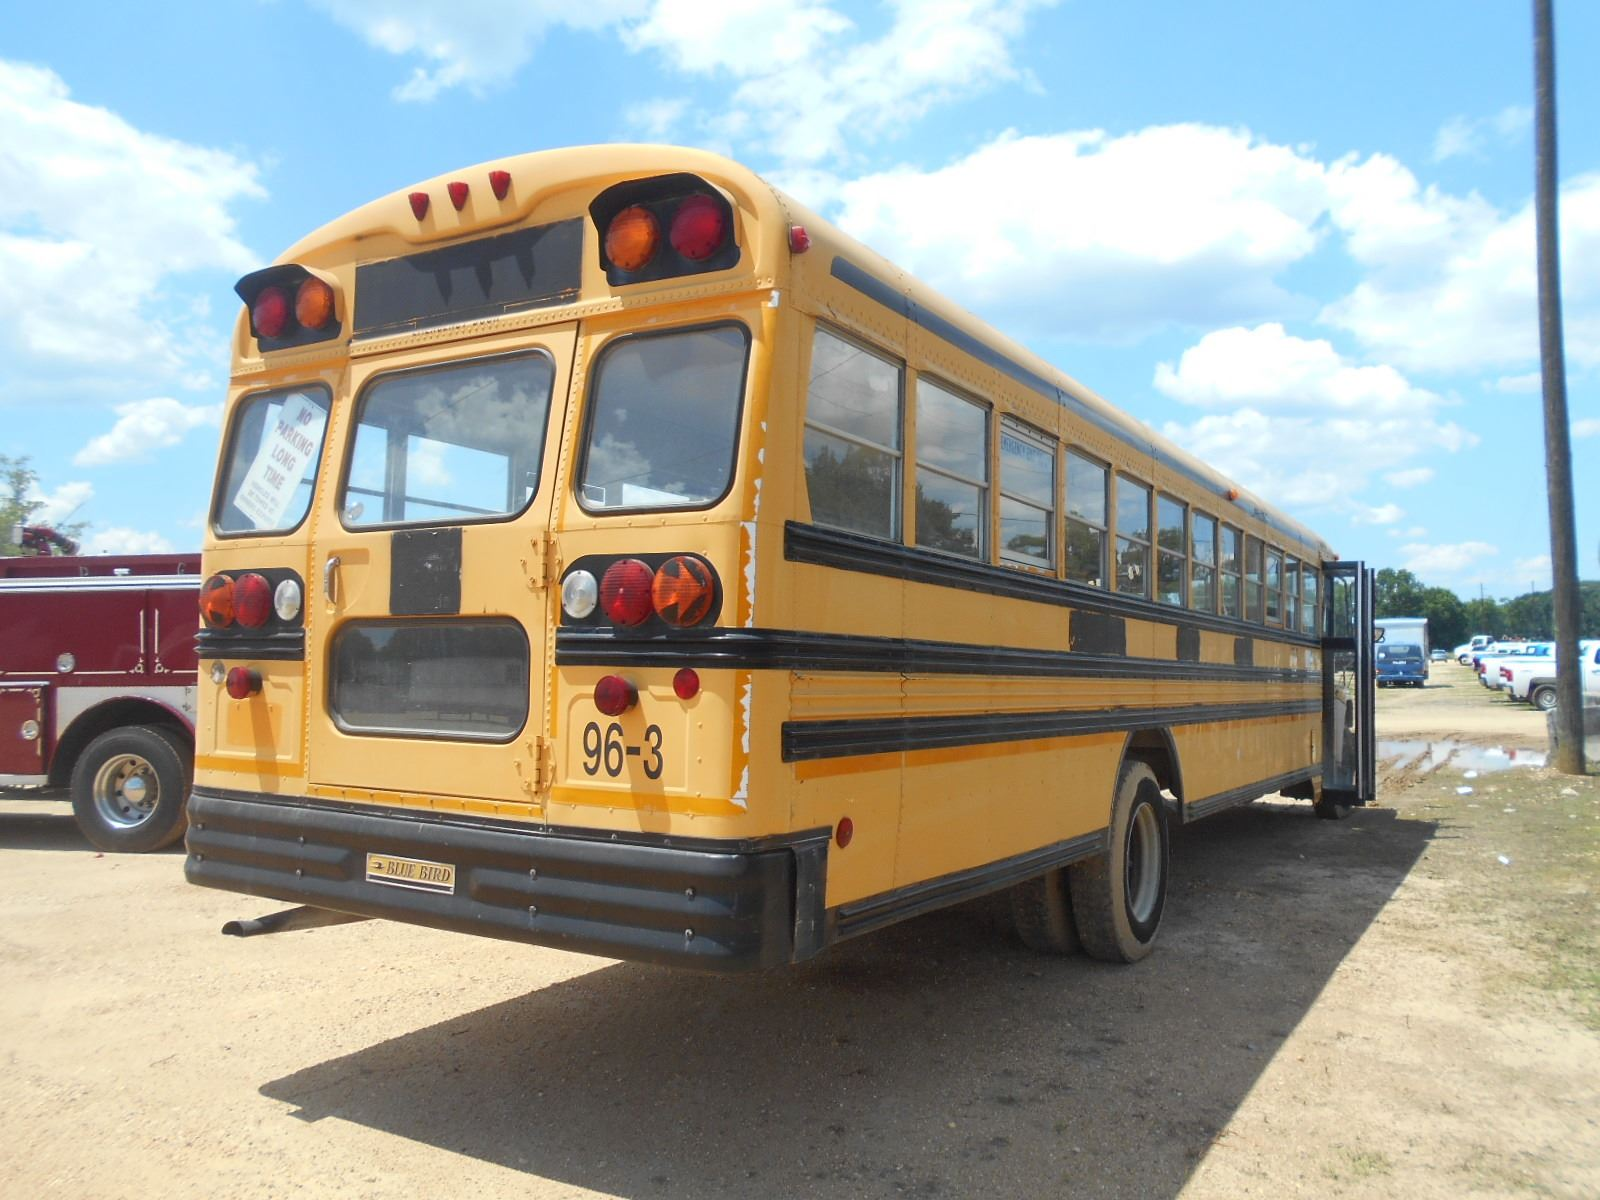 1999 bluebird bus wiring diagram wiring diagram rh cleanprosperity co Bluebird School Bus Wiring Diagrams 2010 E350